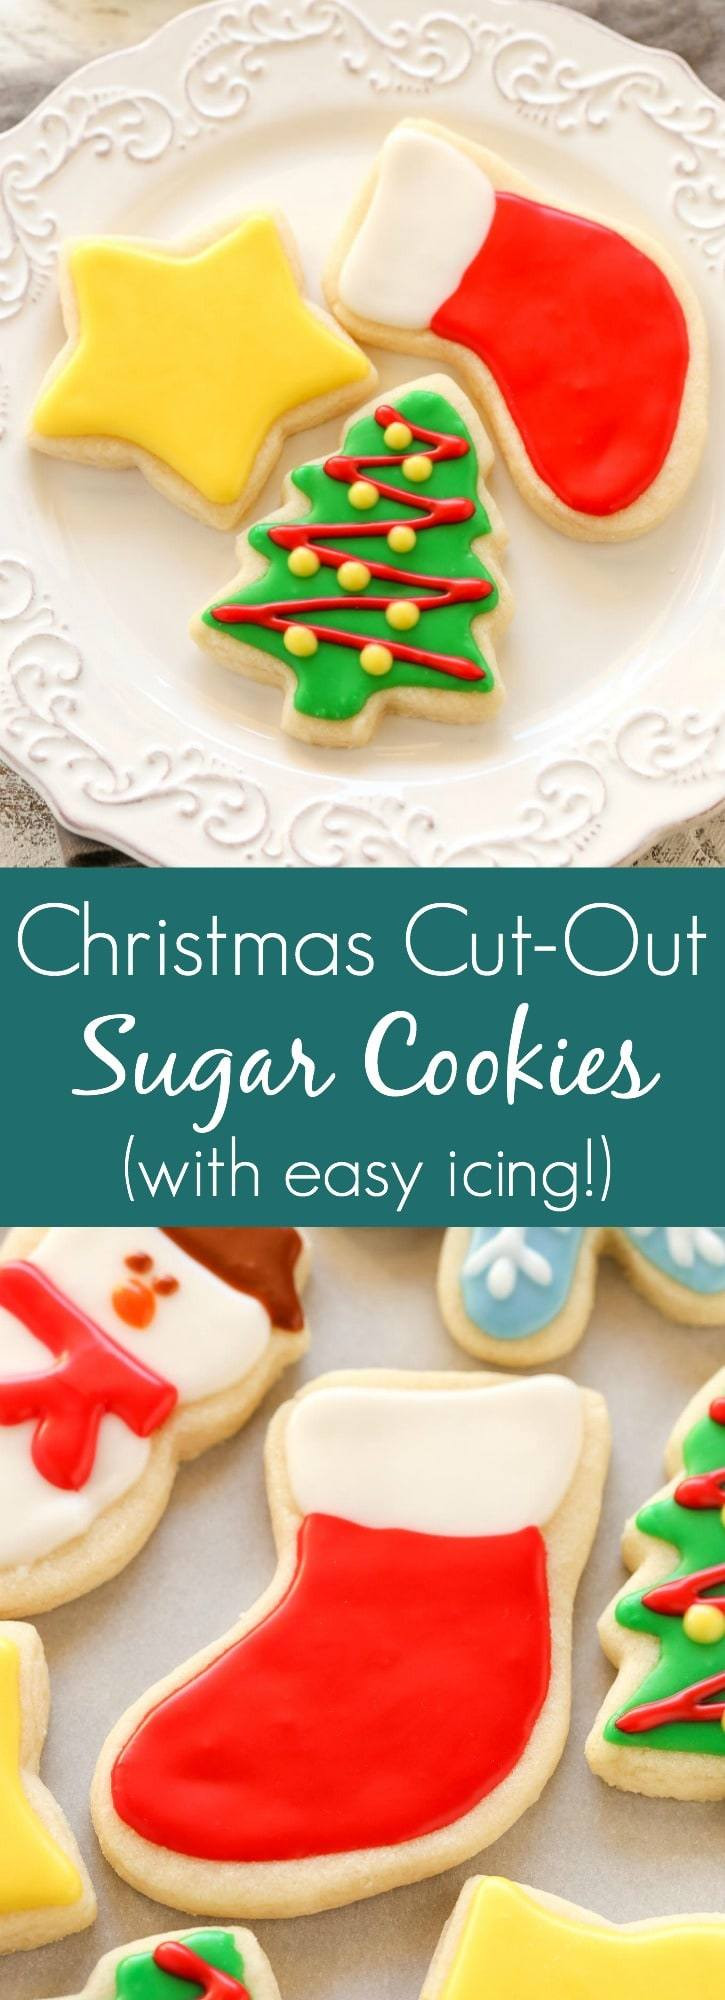 Soft Christmas Cookies  Soft Christmas Cut Out Sugar Cookies Live Well Bake ten